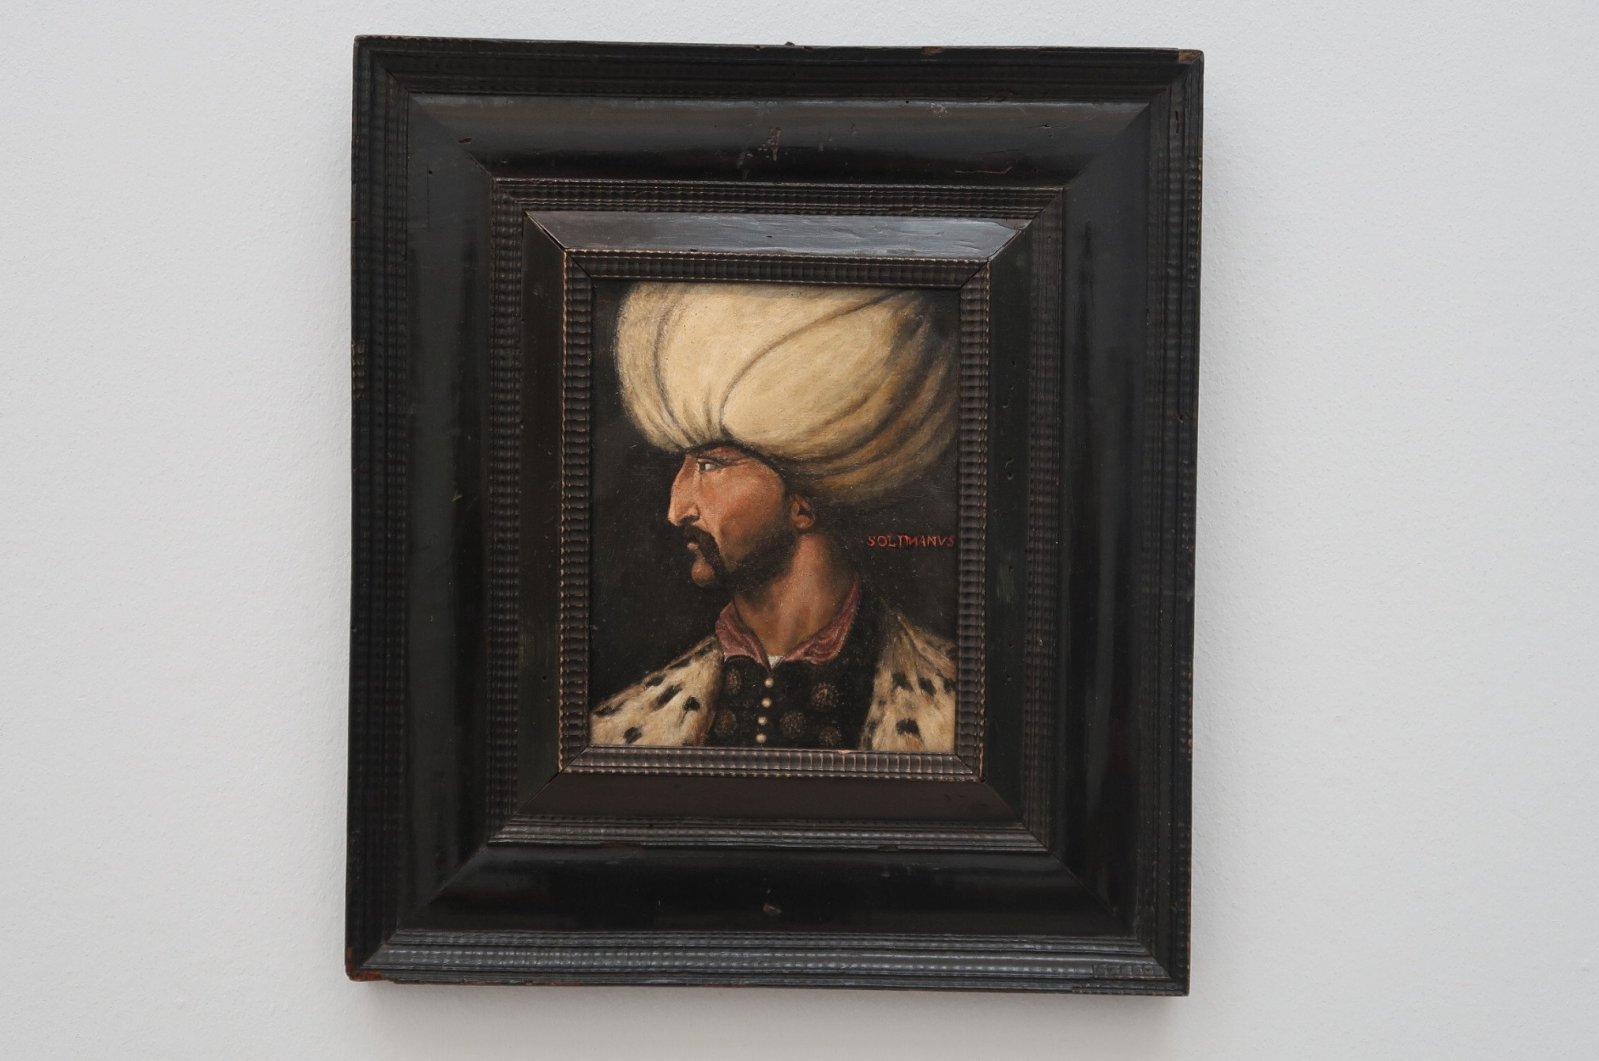 The portrait of Ottoman Sultan Suleiman I at Sotheby's, London, U.K., March 31, 2021. (AA Photo)